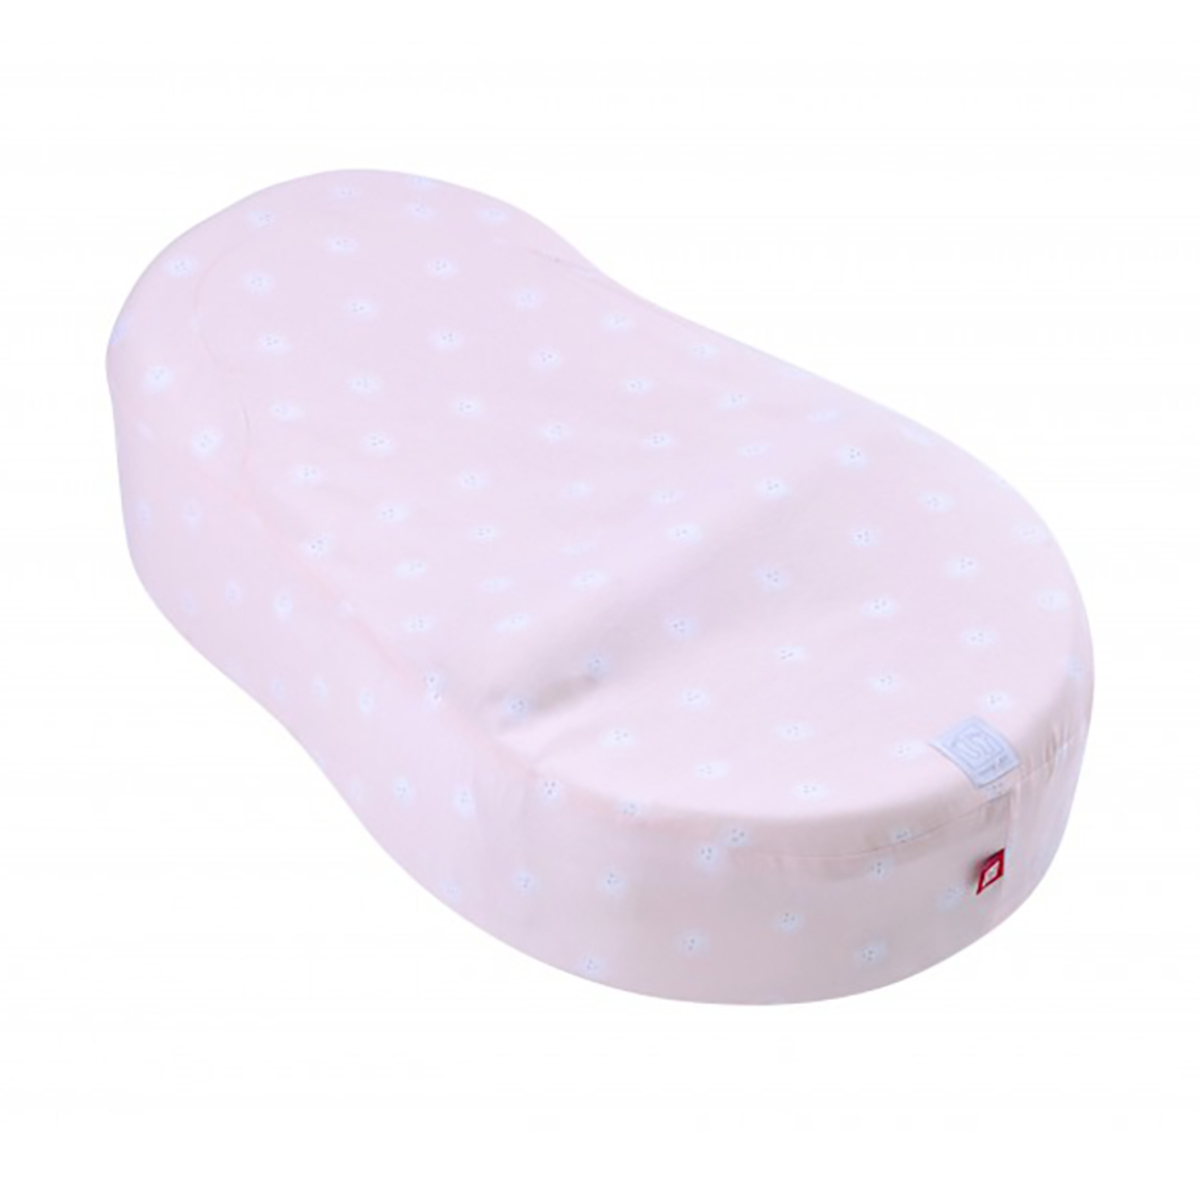 Inclinateur Drap Housse Cocoonababy - Miss Sunday Drap Housse Cocoonababy - Miss Sunday